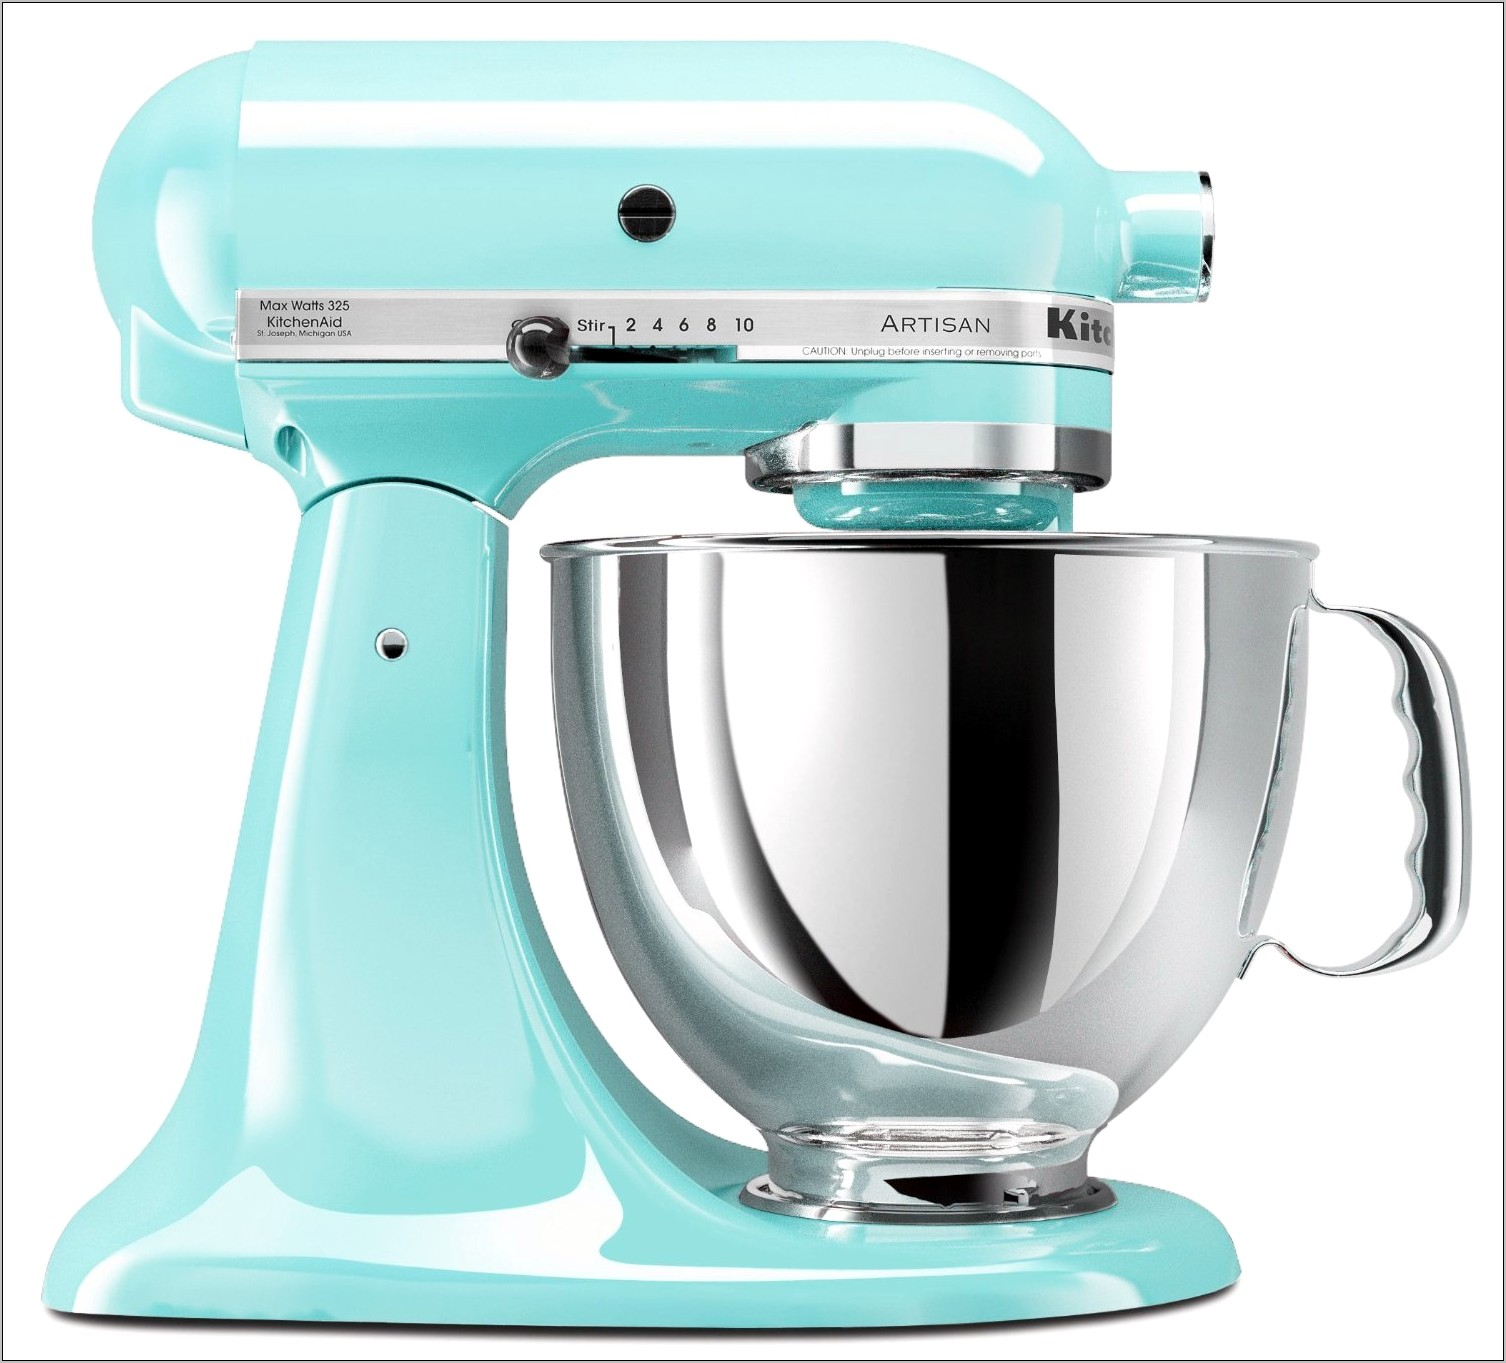 Pictures Of Decorated Kitchen Aid Stand Mixer